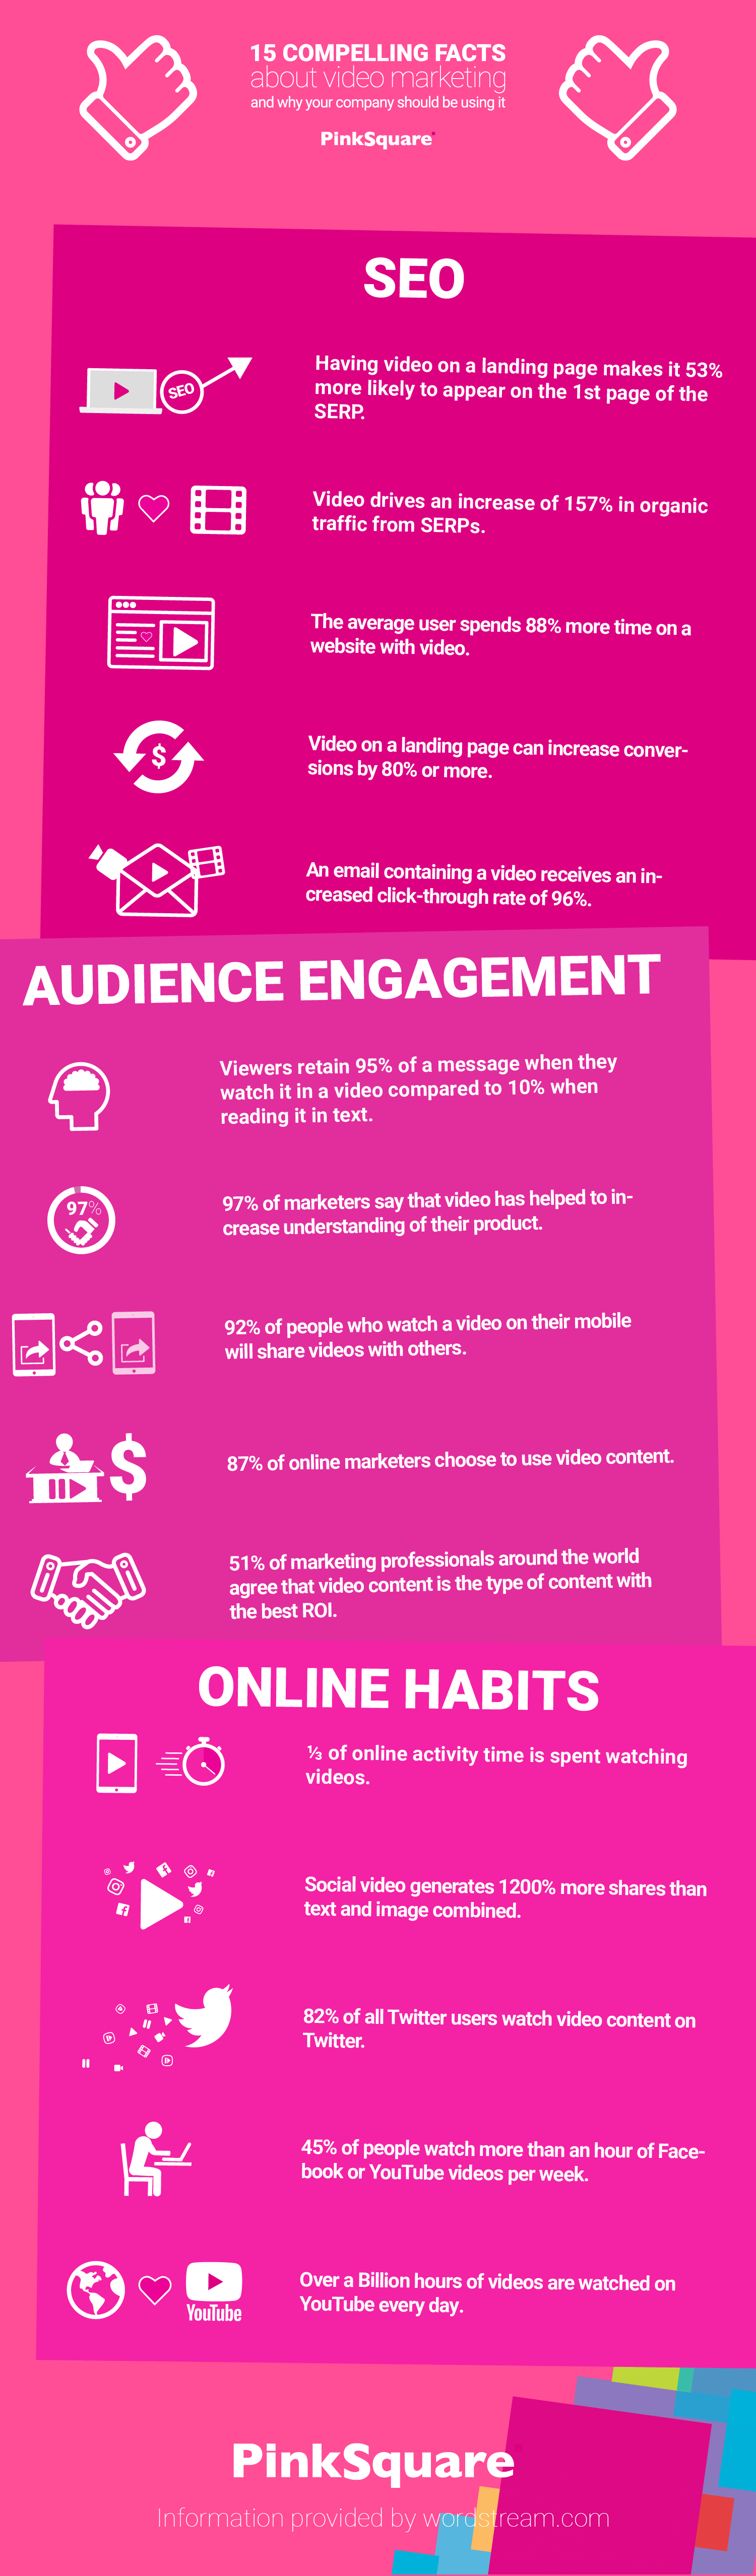 infographic of SEO, audience engagement and online habits